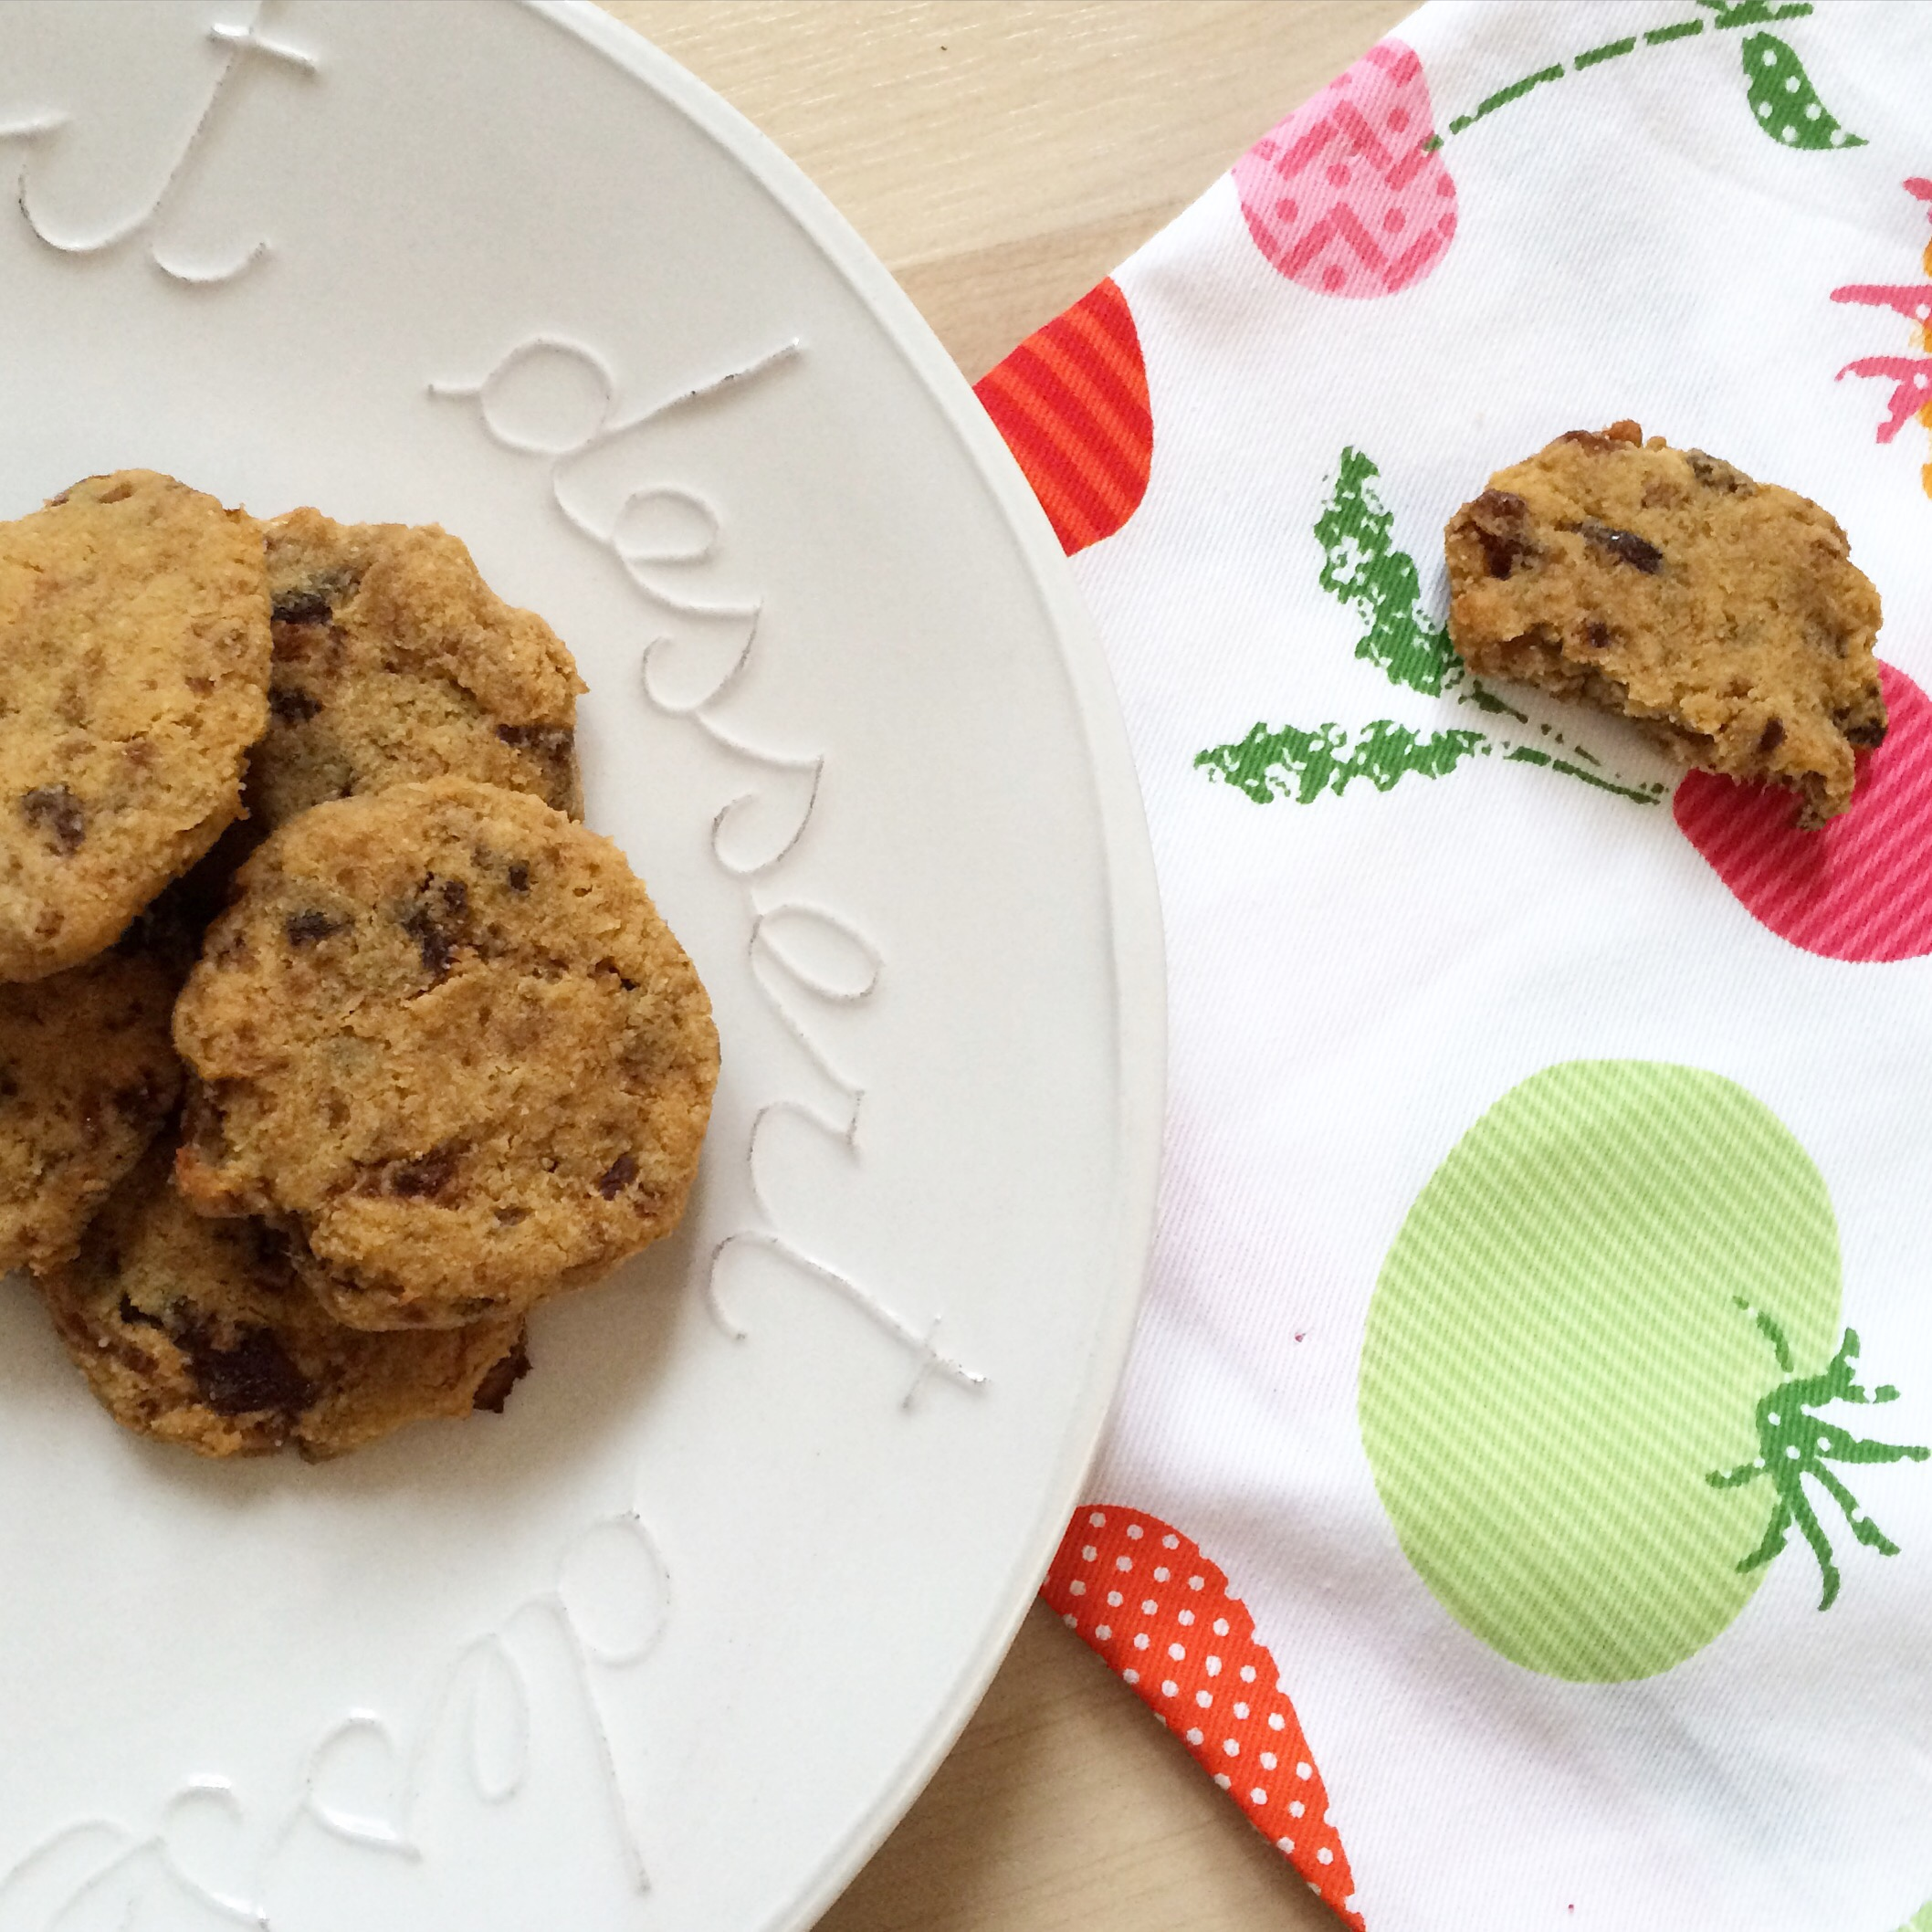 Delicious, chewy, apricot AIP cookies - yum!